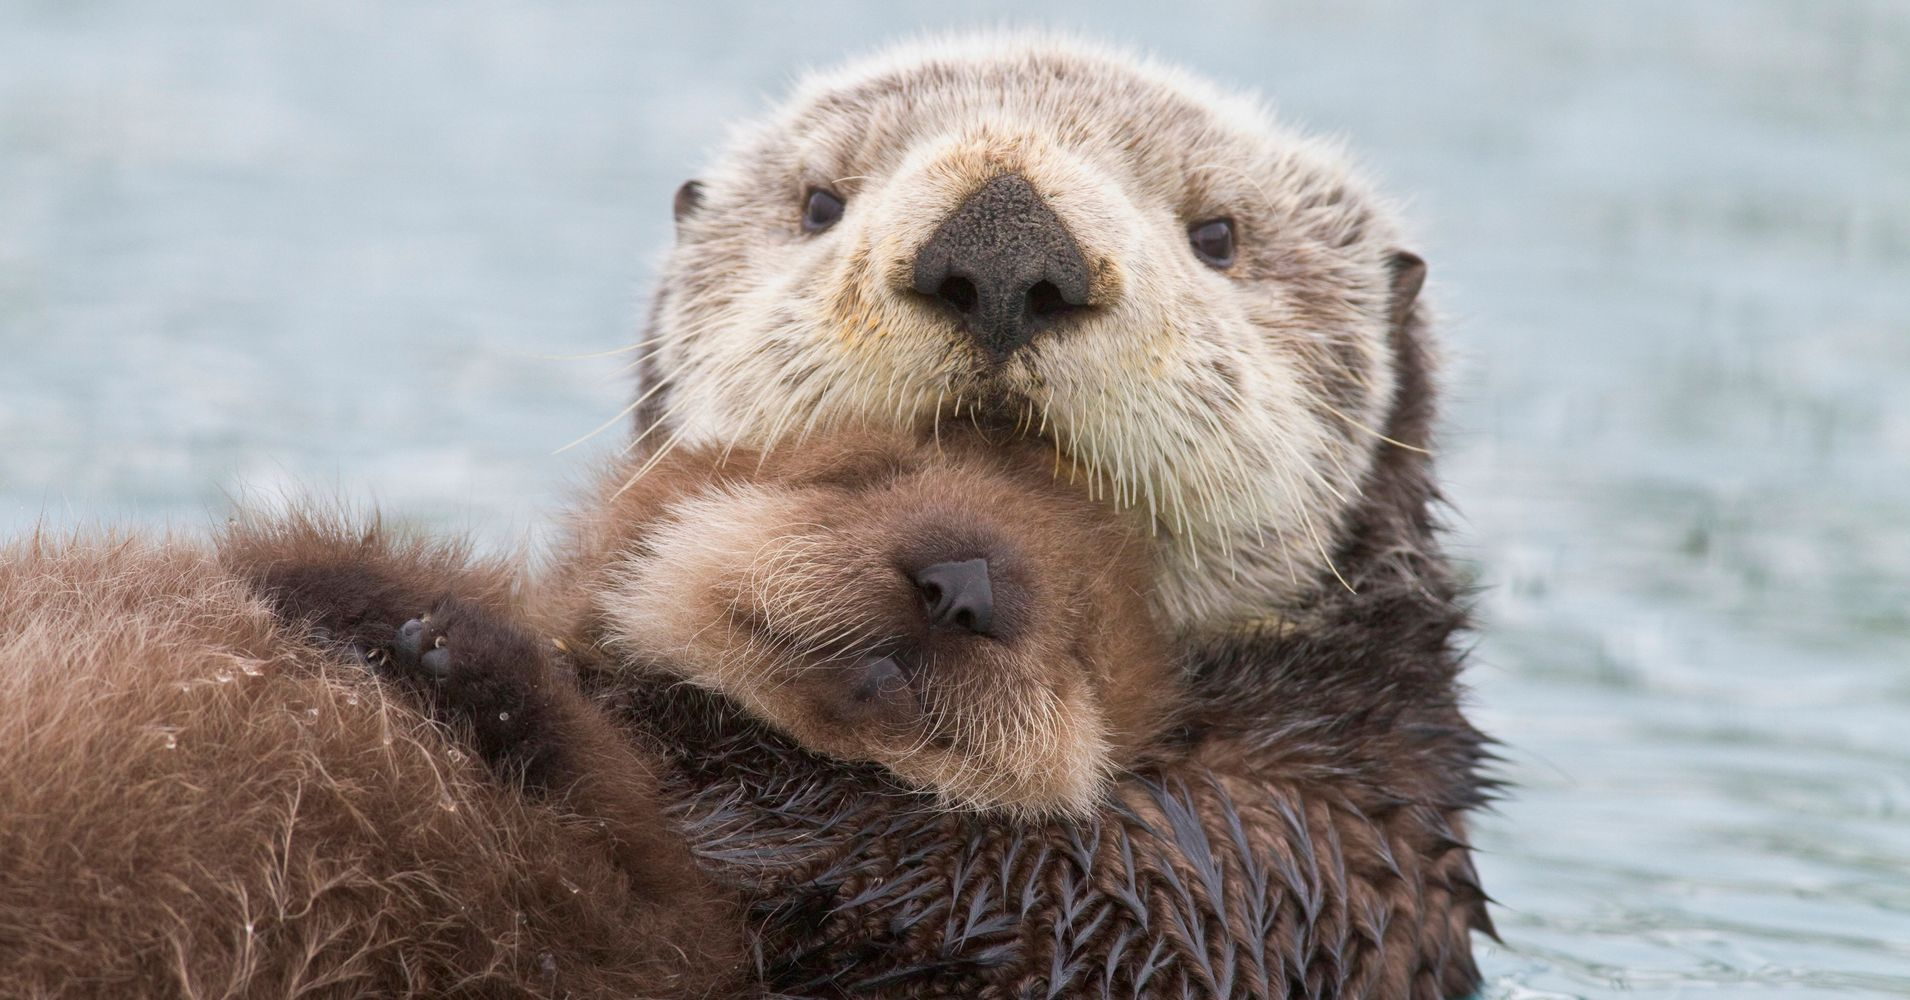 watch heroic rescuers reunite crying otter pup with mom huffpost